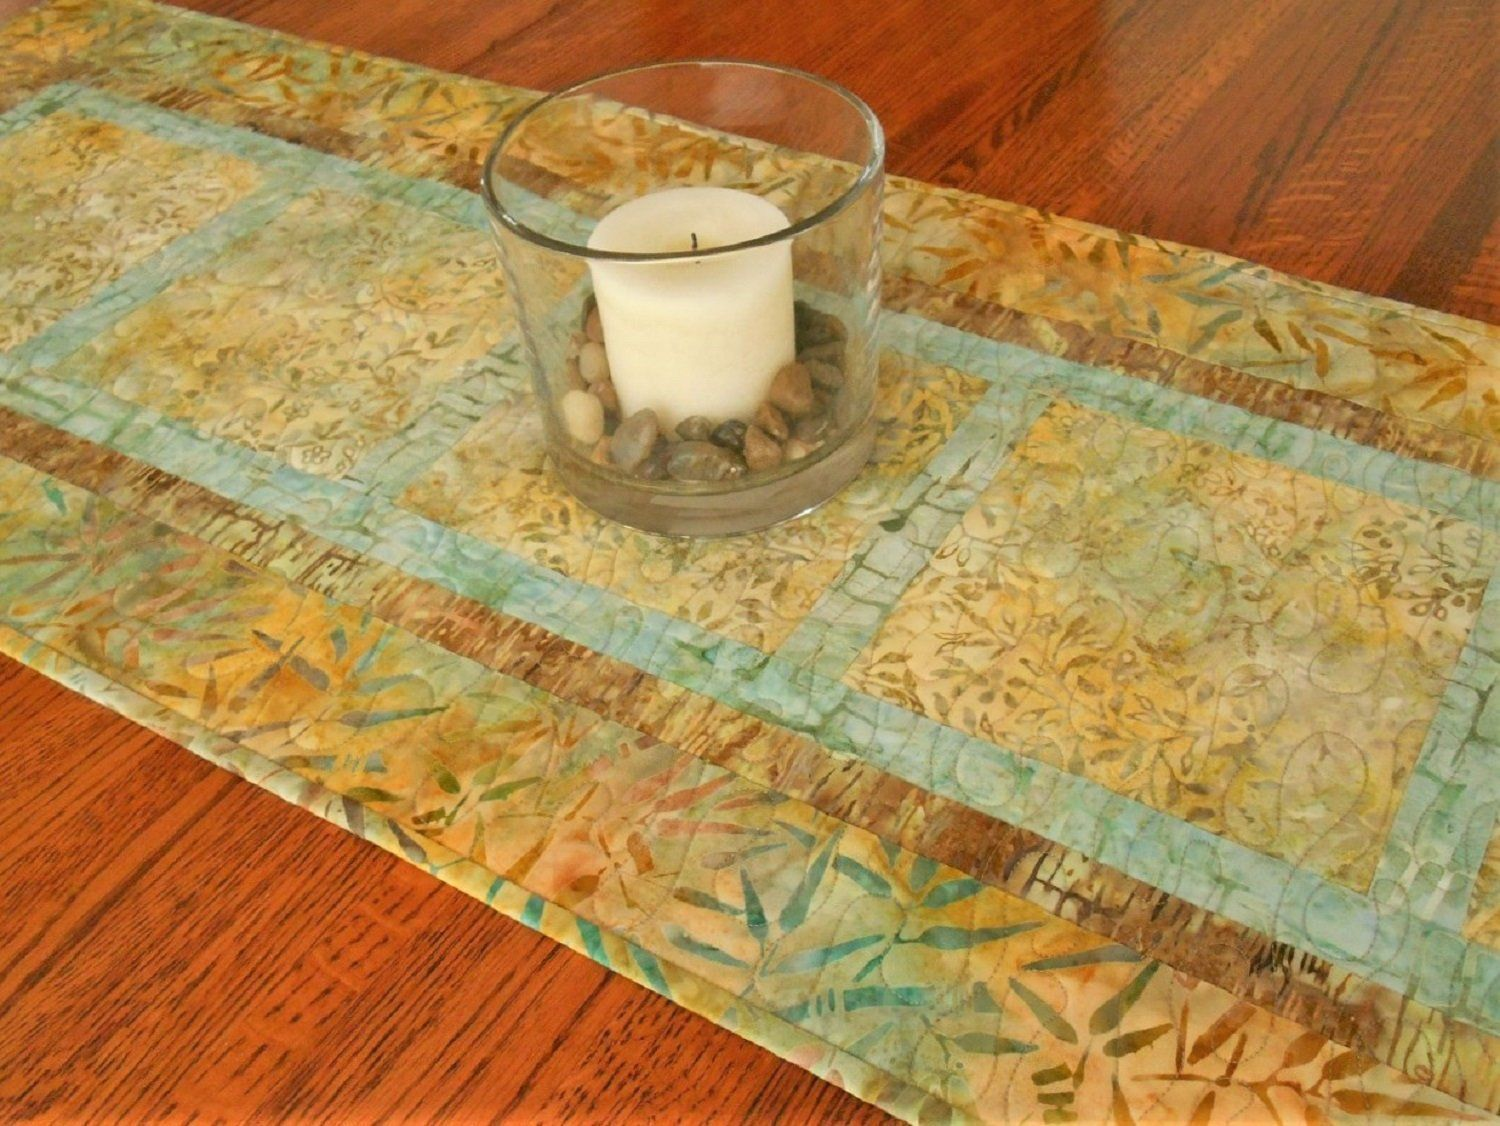 Quilted Table Runner In Yellow And Aqua Batiks Dining Table Decor Coffee Table Runner Bedroom D Batik Table Runners Coffee Table Runner Quilted Table Runner